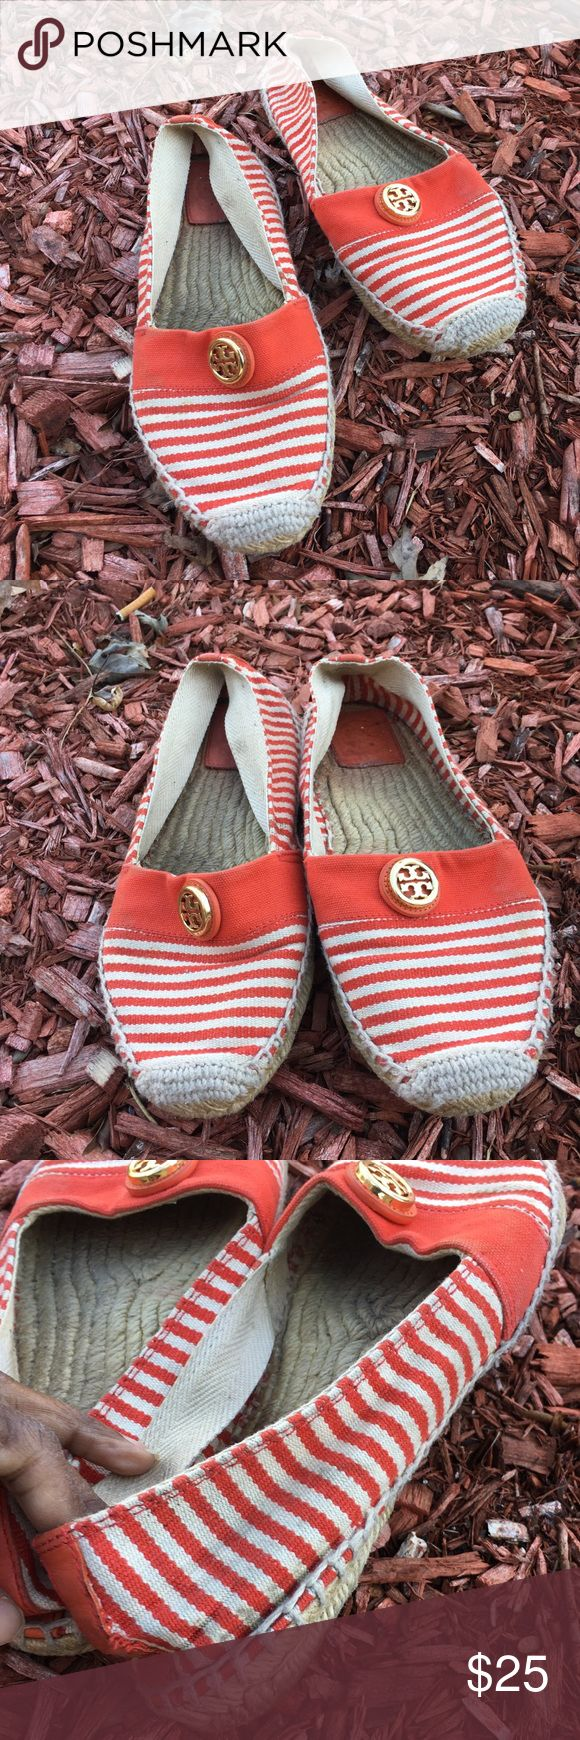 Tory Burch Cream & Orange Espadrilles - Sz 9 🌟🌟 Please read 🌟🌟- these shoes have flaws. There are stains on the top of the shoe that could be washed off, the sole on one shoes has the rubber lifting (can be glued down), the back has been walked on and the inside has wear. These are great shoes for that right person. Tory Burch Shoes Espadrilles